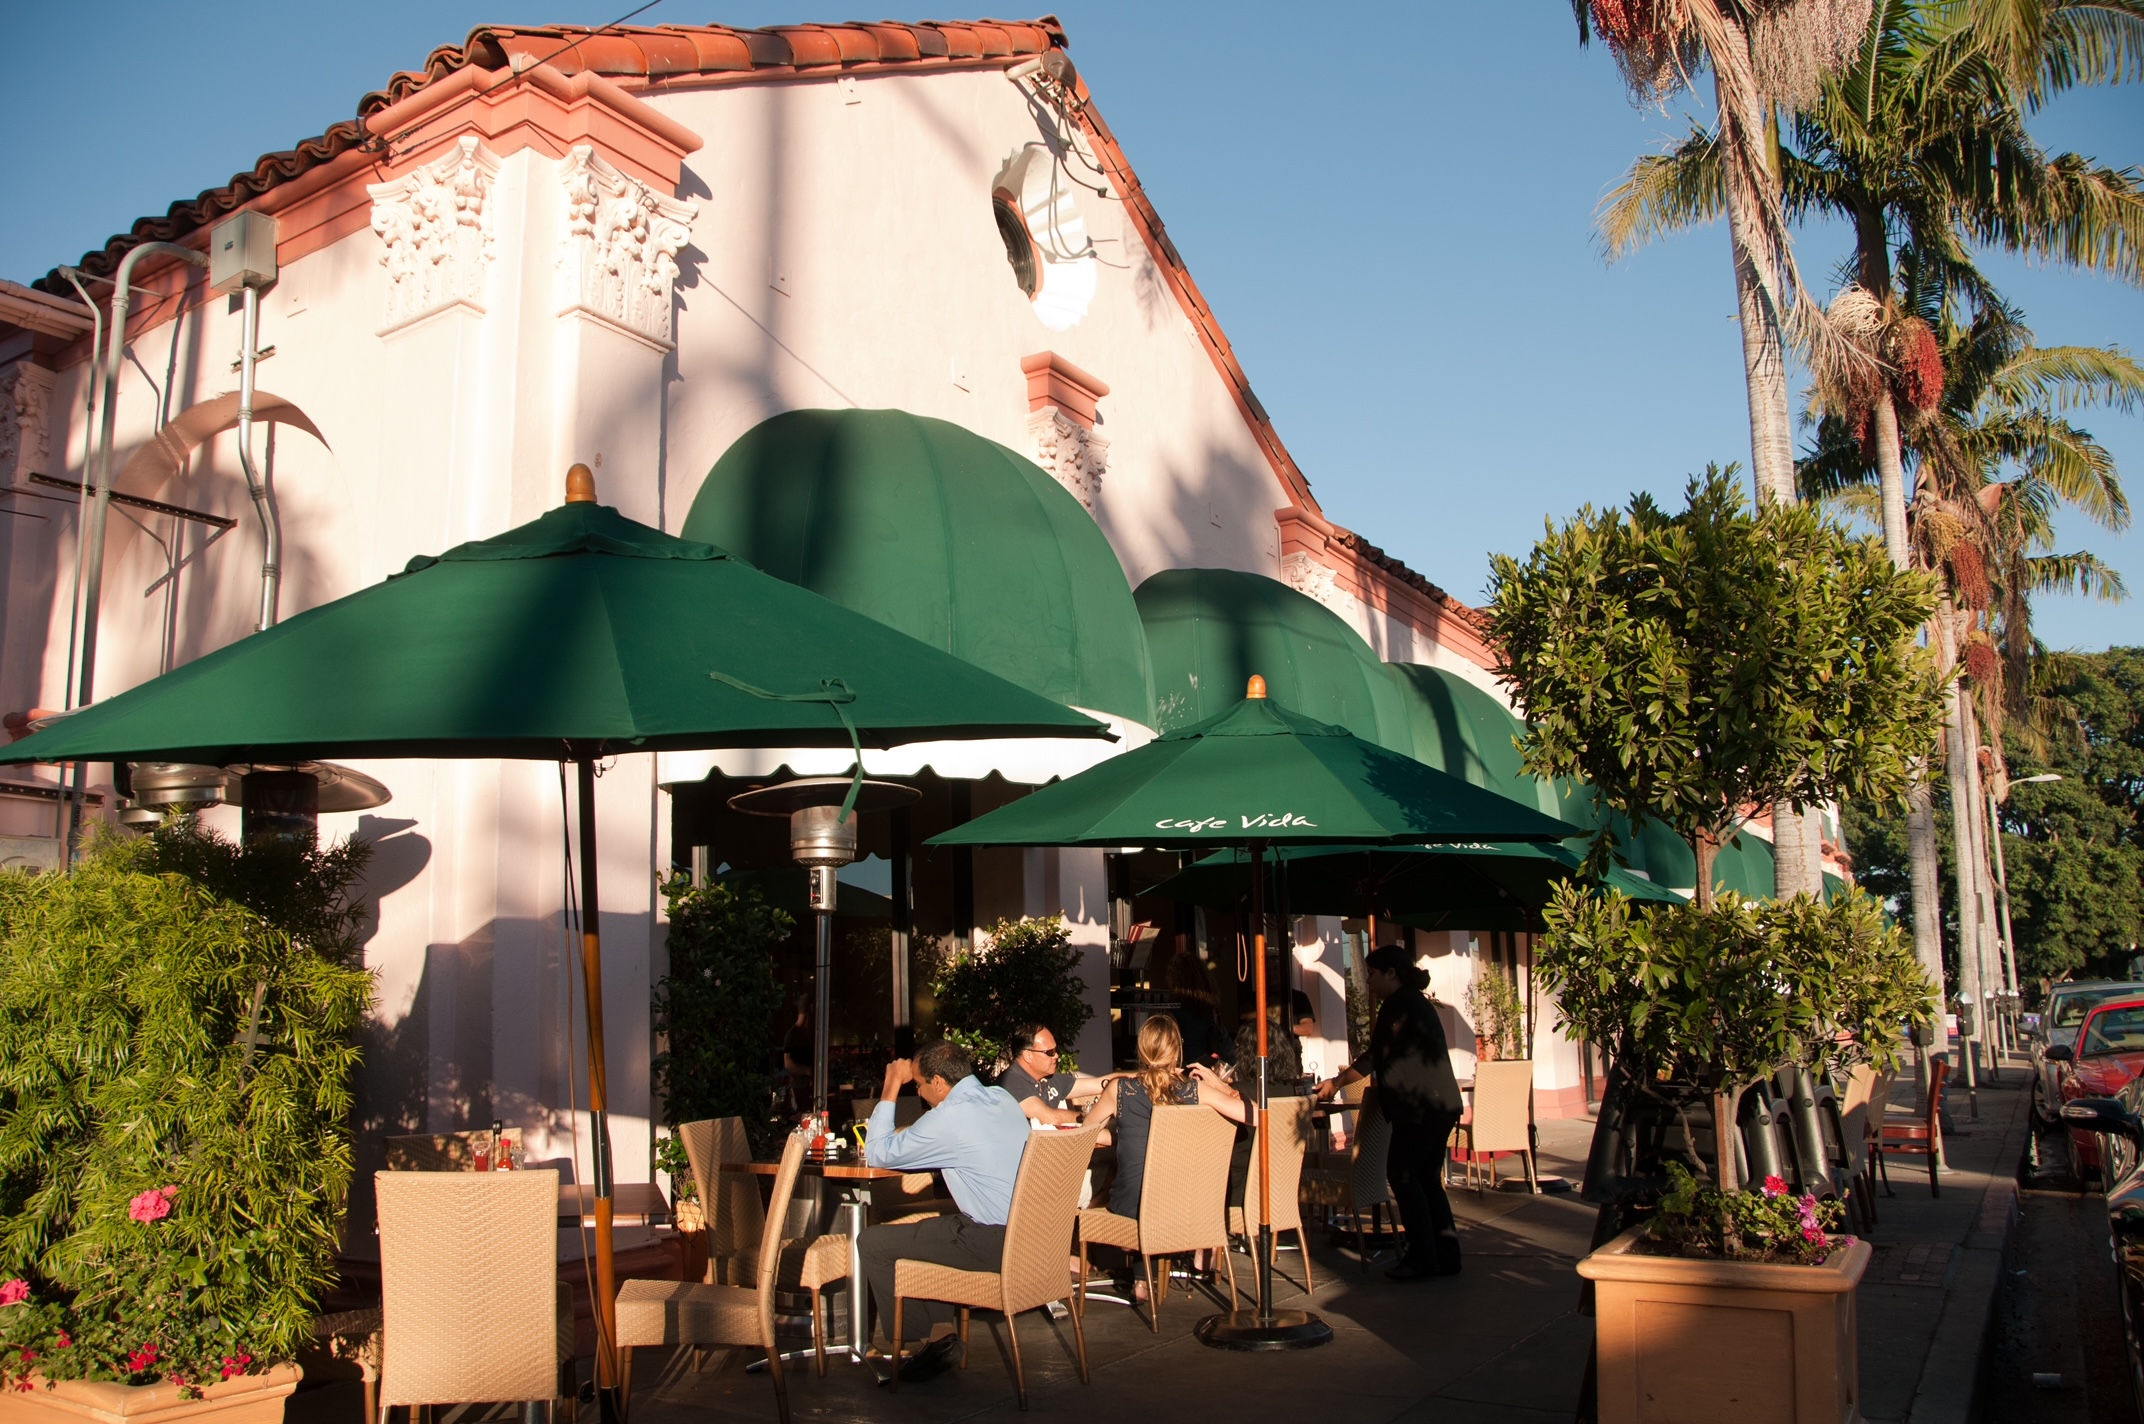 Photo of the exterior of Cafe Vida Pacific Palisades, showing outdoor dining.